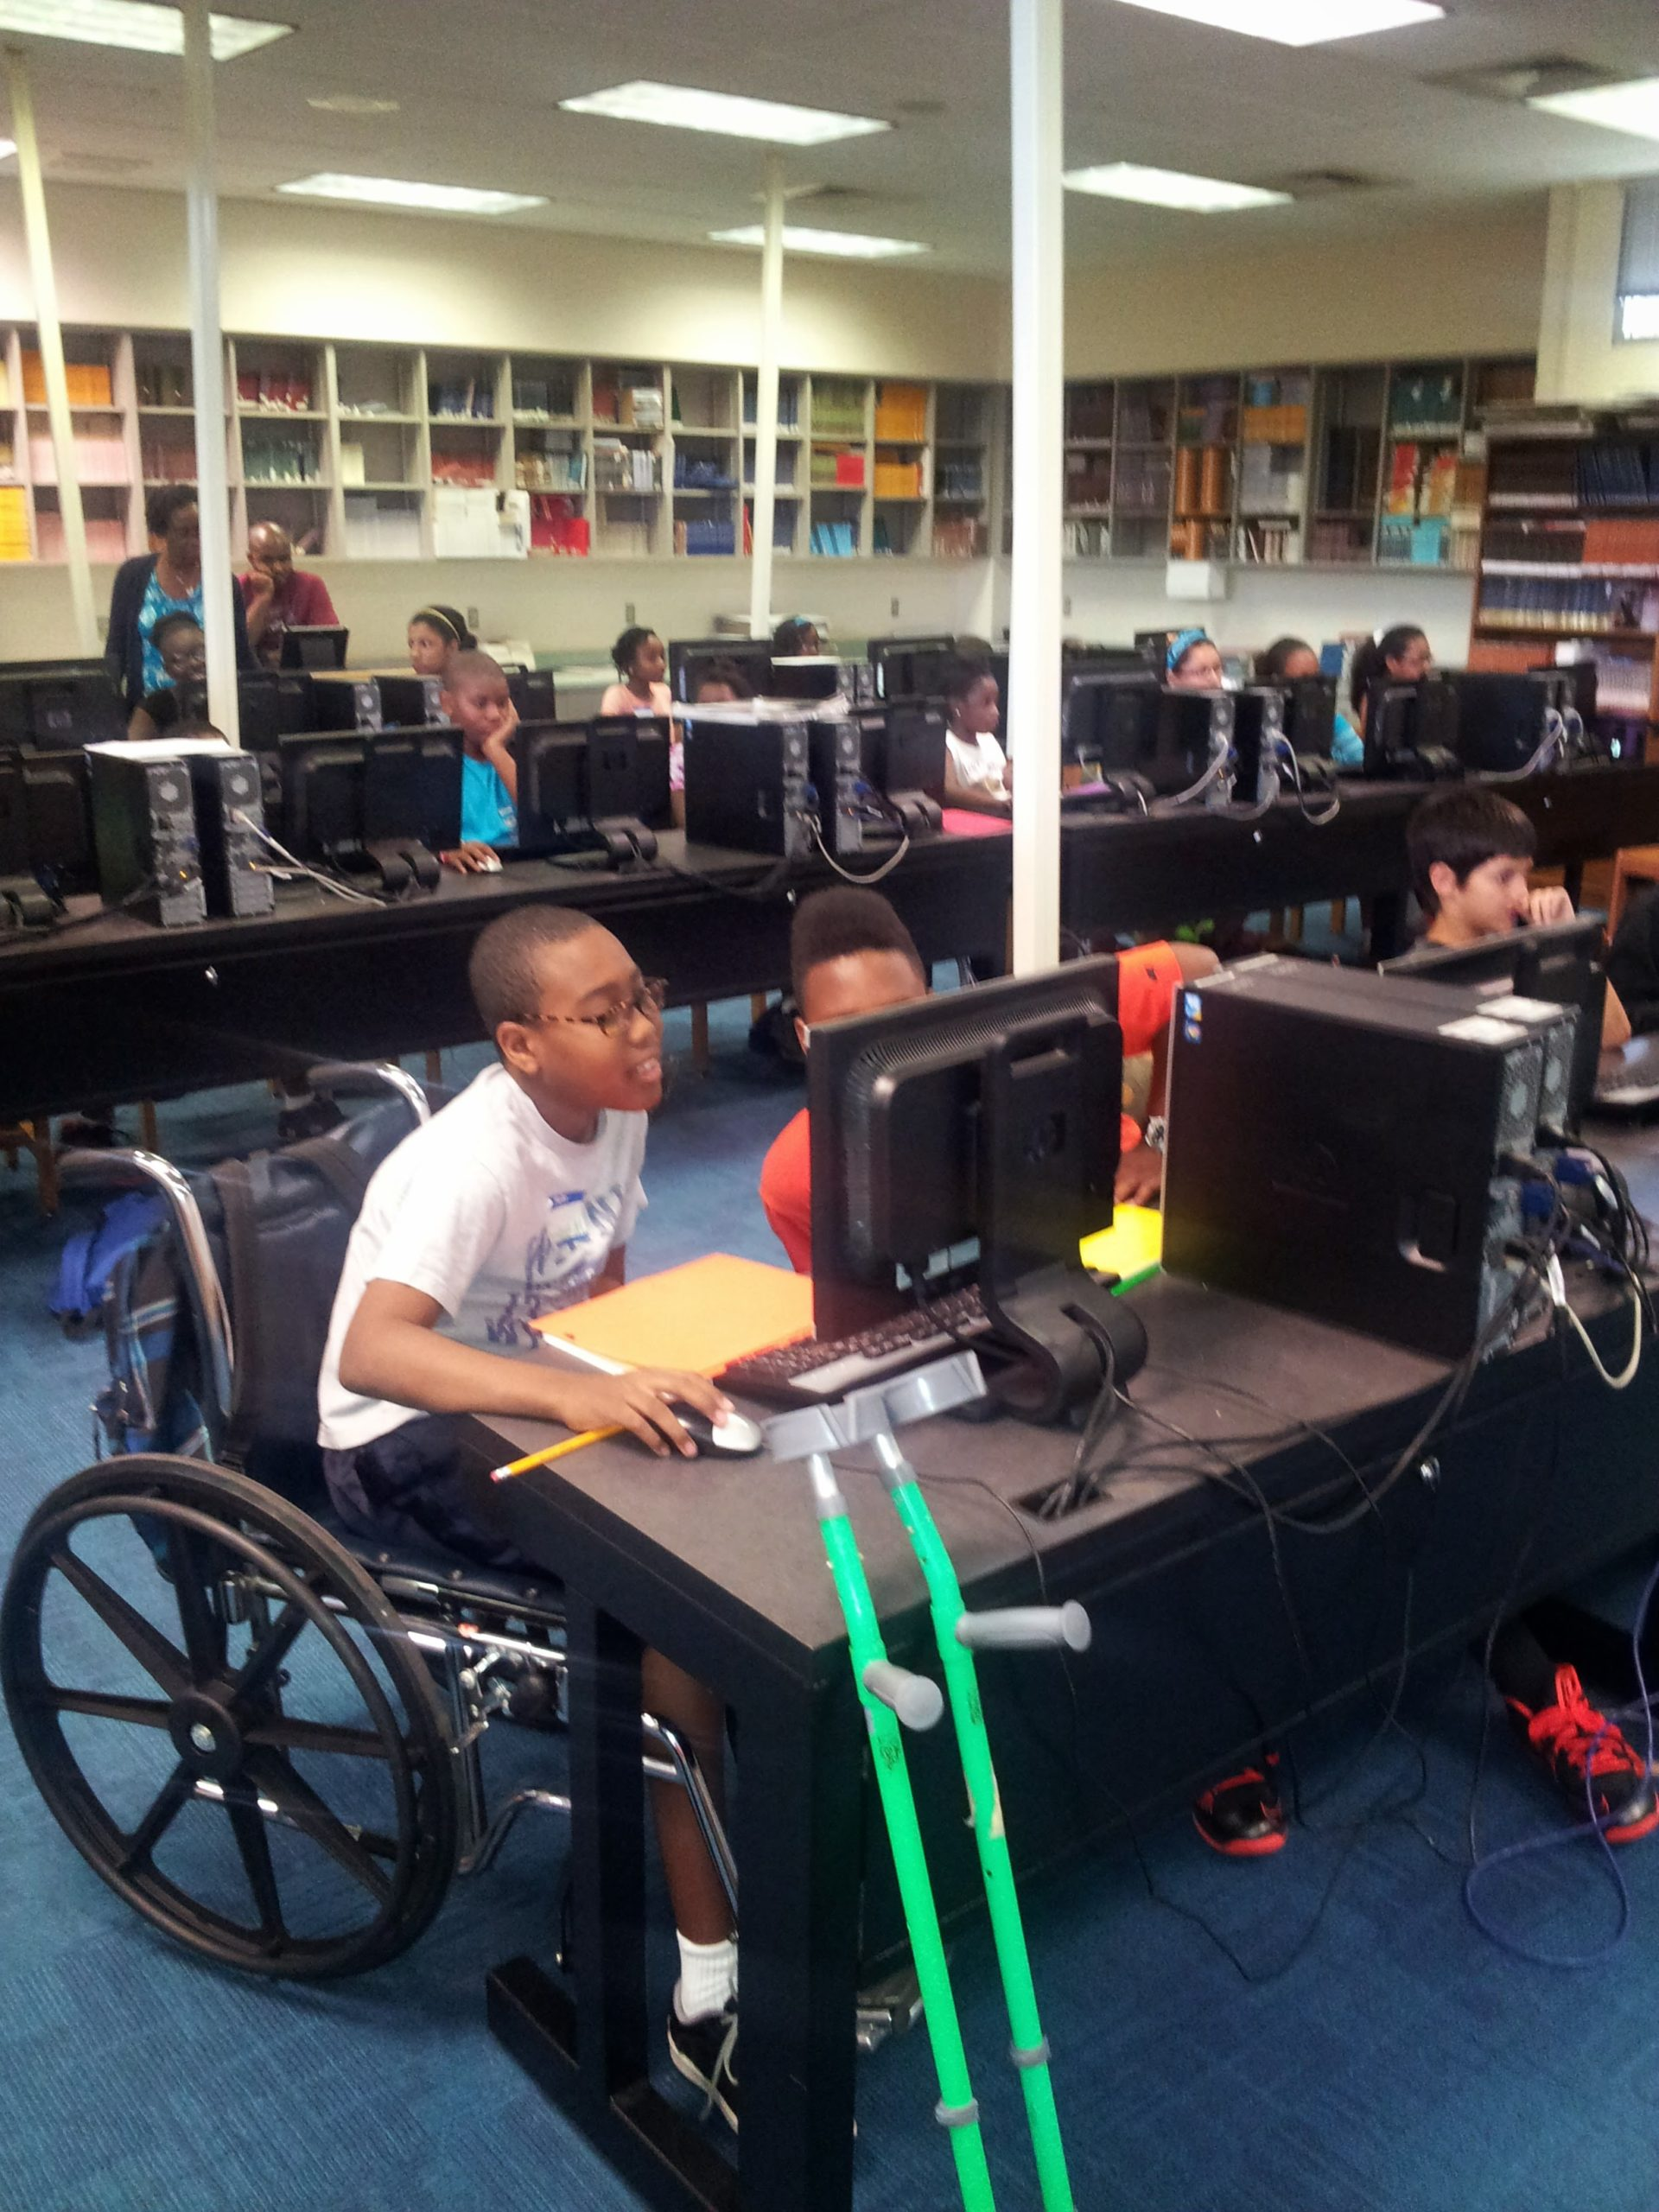 P.E.C. Summer STEM Camp. Students at Maitland Middle School.